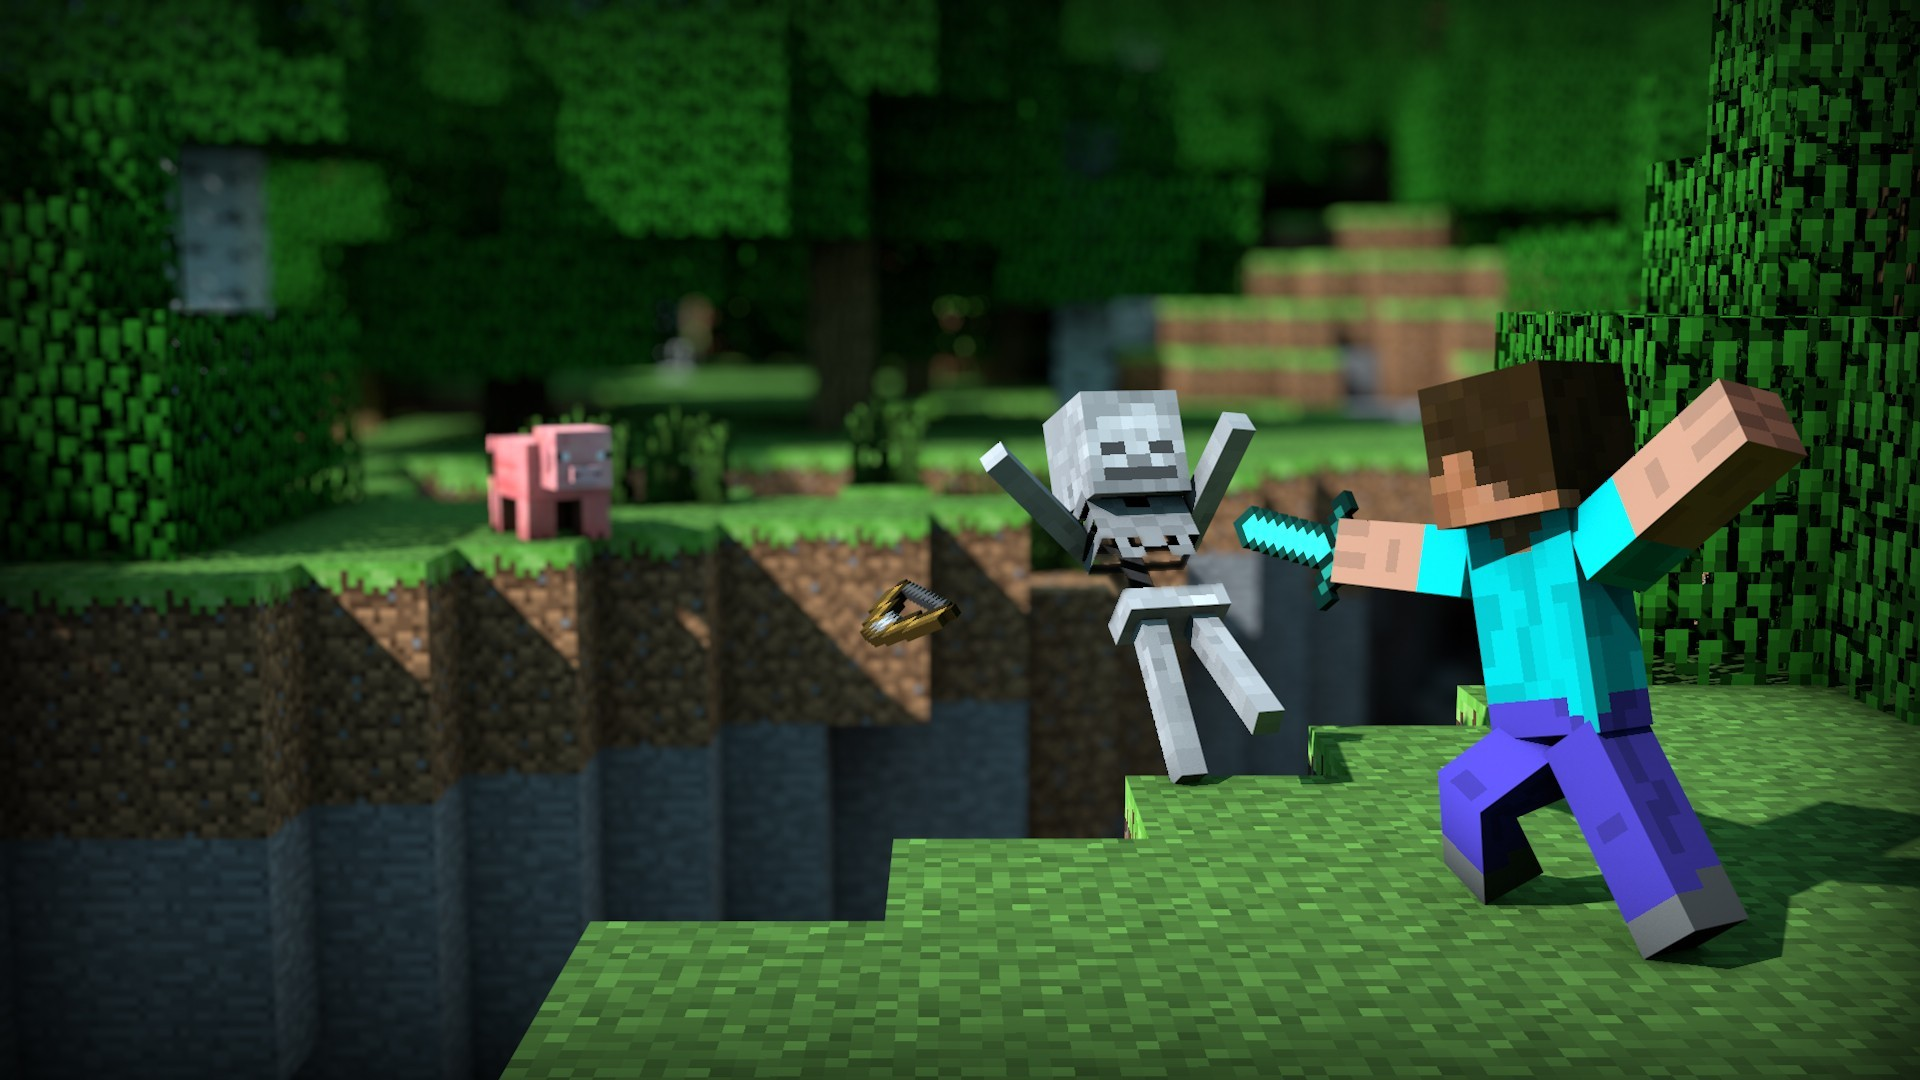 Res: 1920x1080, Top Minecraft Wallpaper. « Awesome Minecraft PhotoChicago Wallpaper »